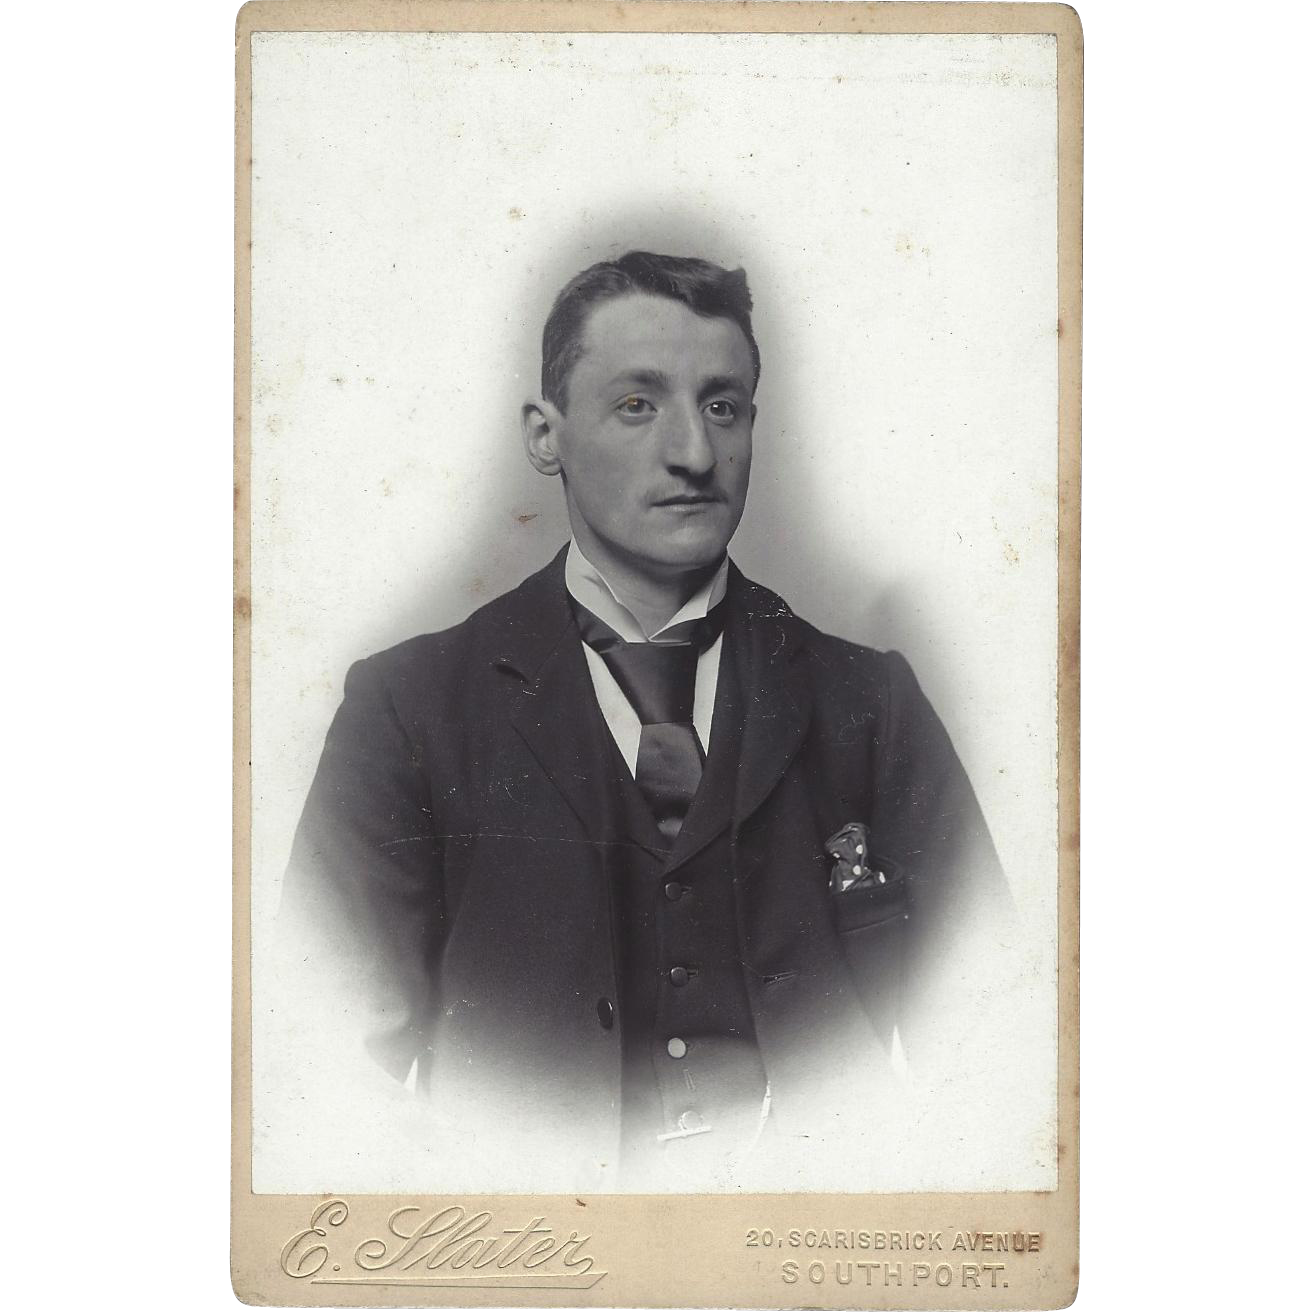 Cabinet Photograph Card Distinguished Young Man, E. Slater